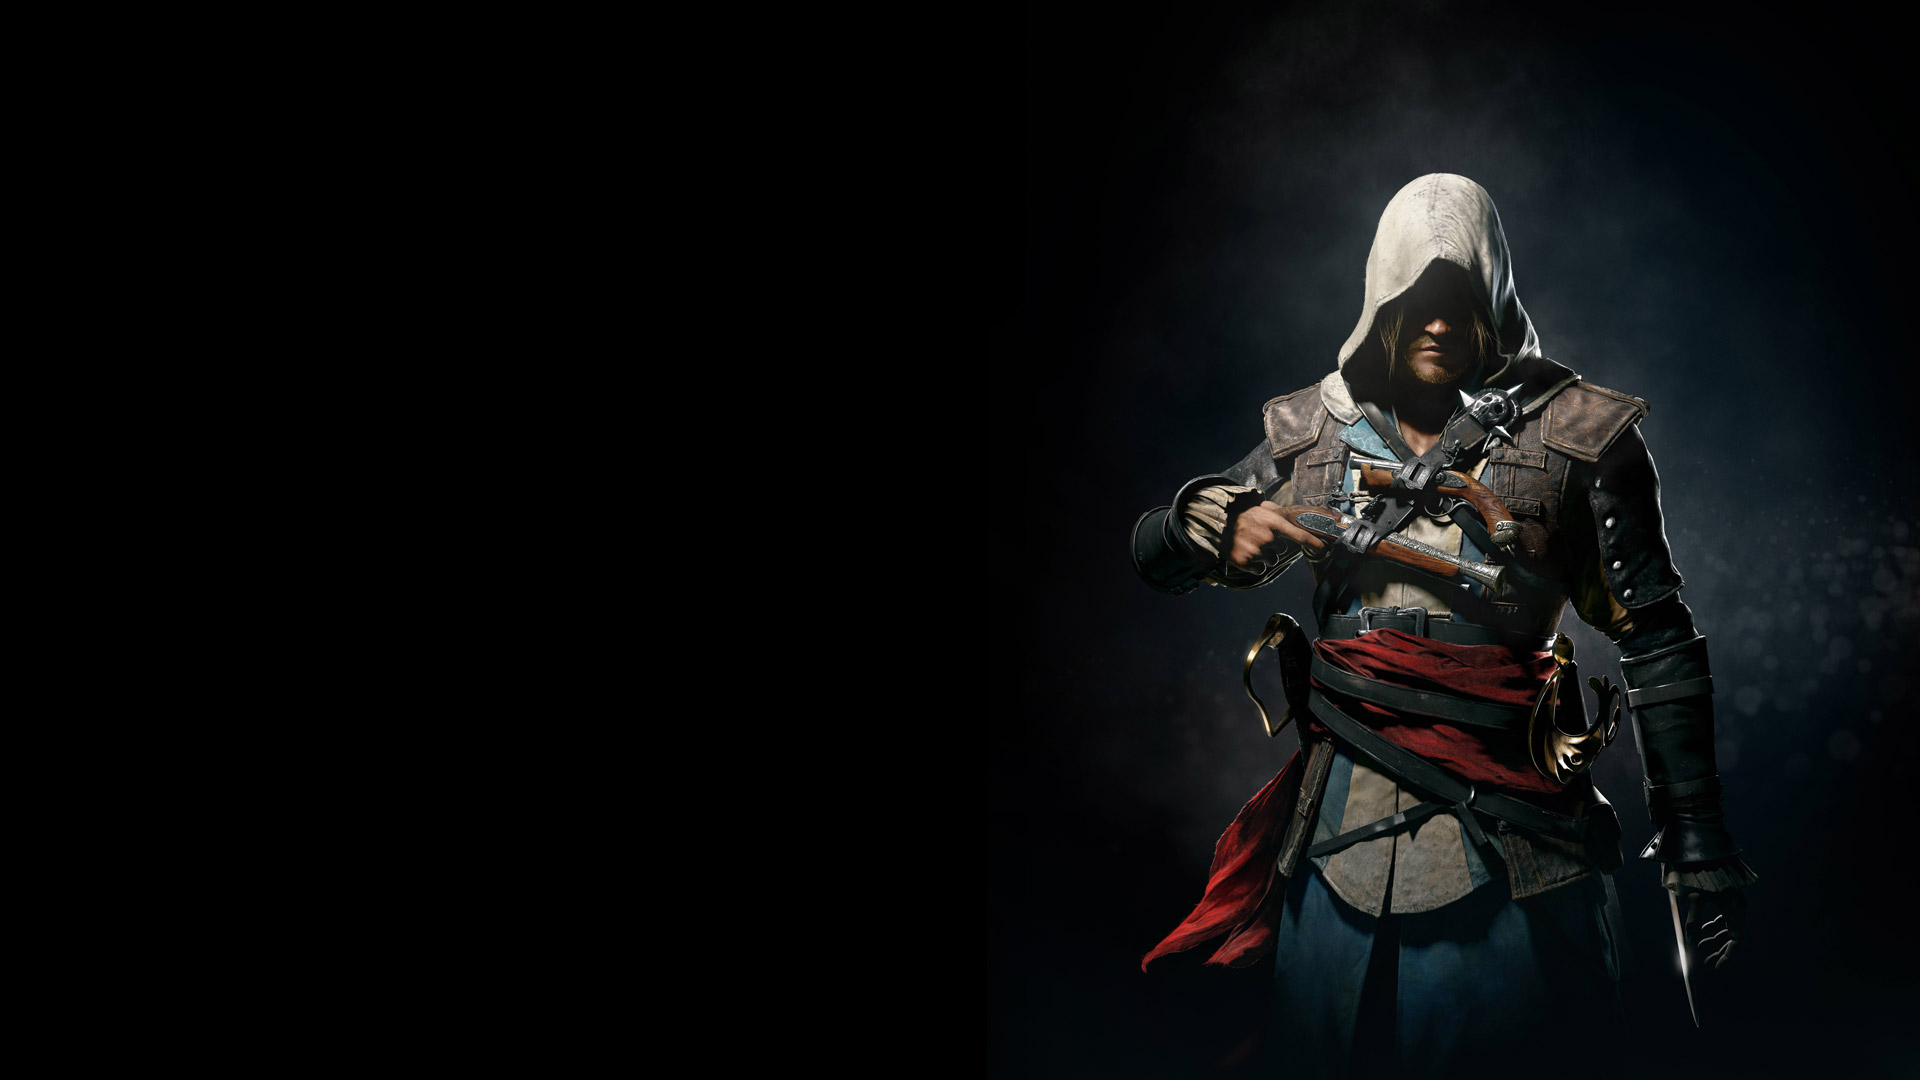 Assassin's Creed Black Flag Wallpapers - WallpaperSafari